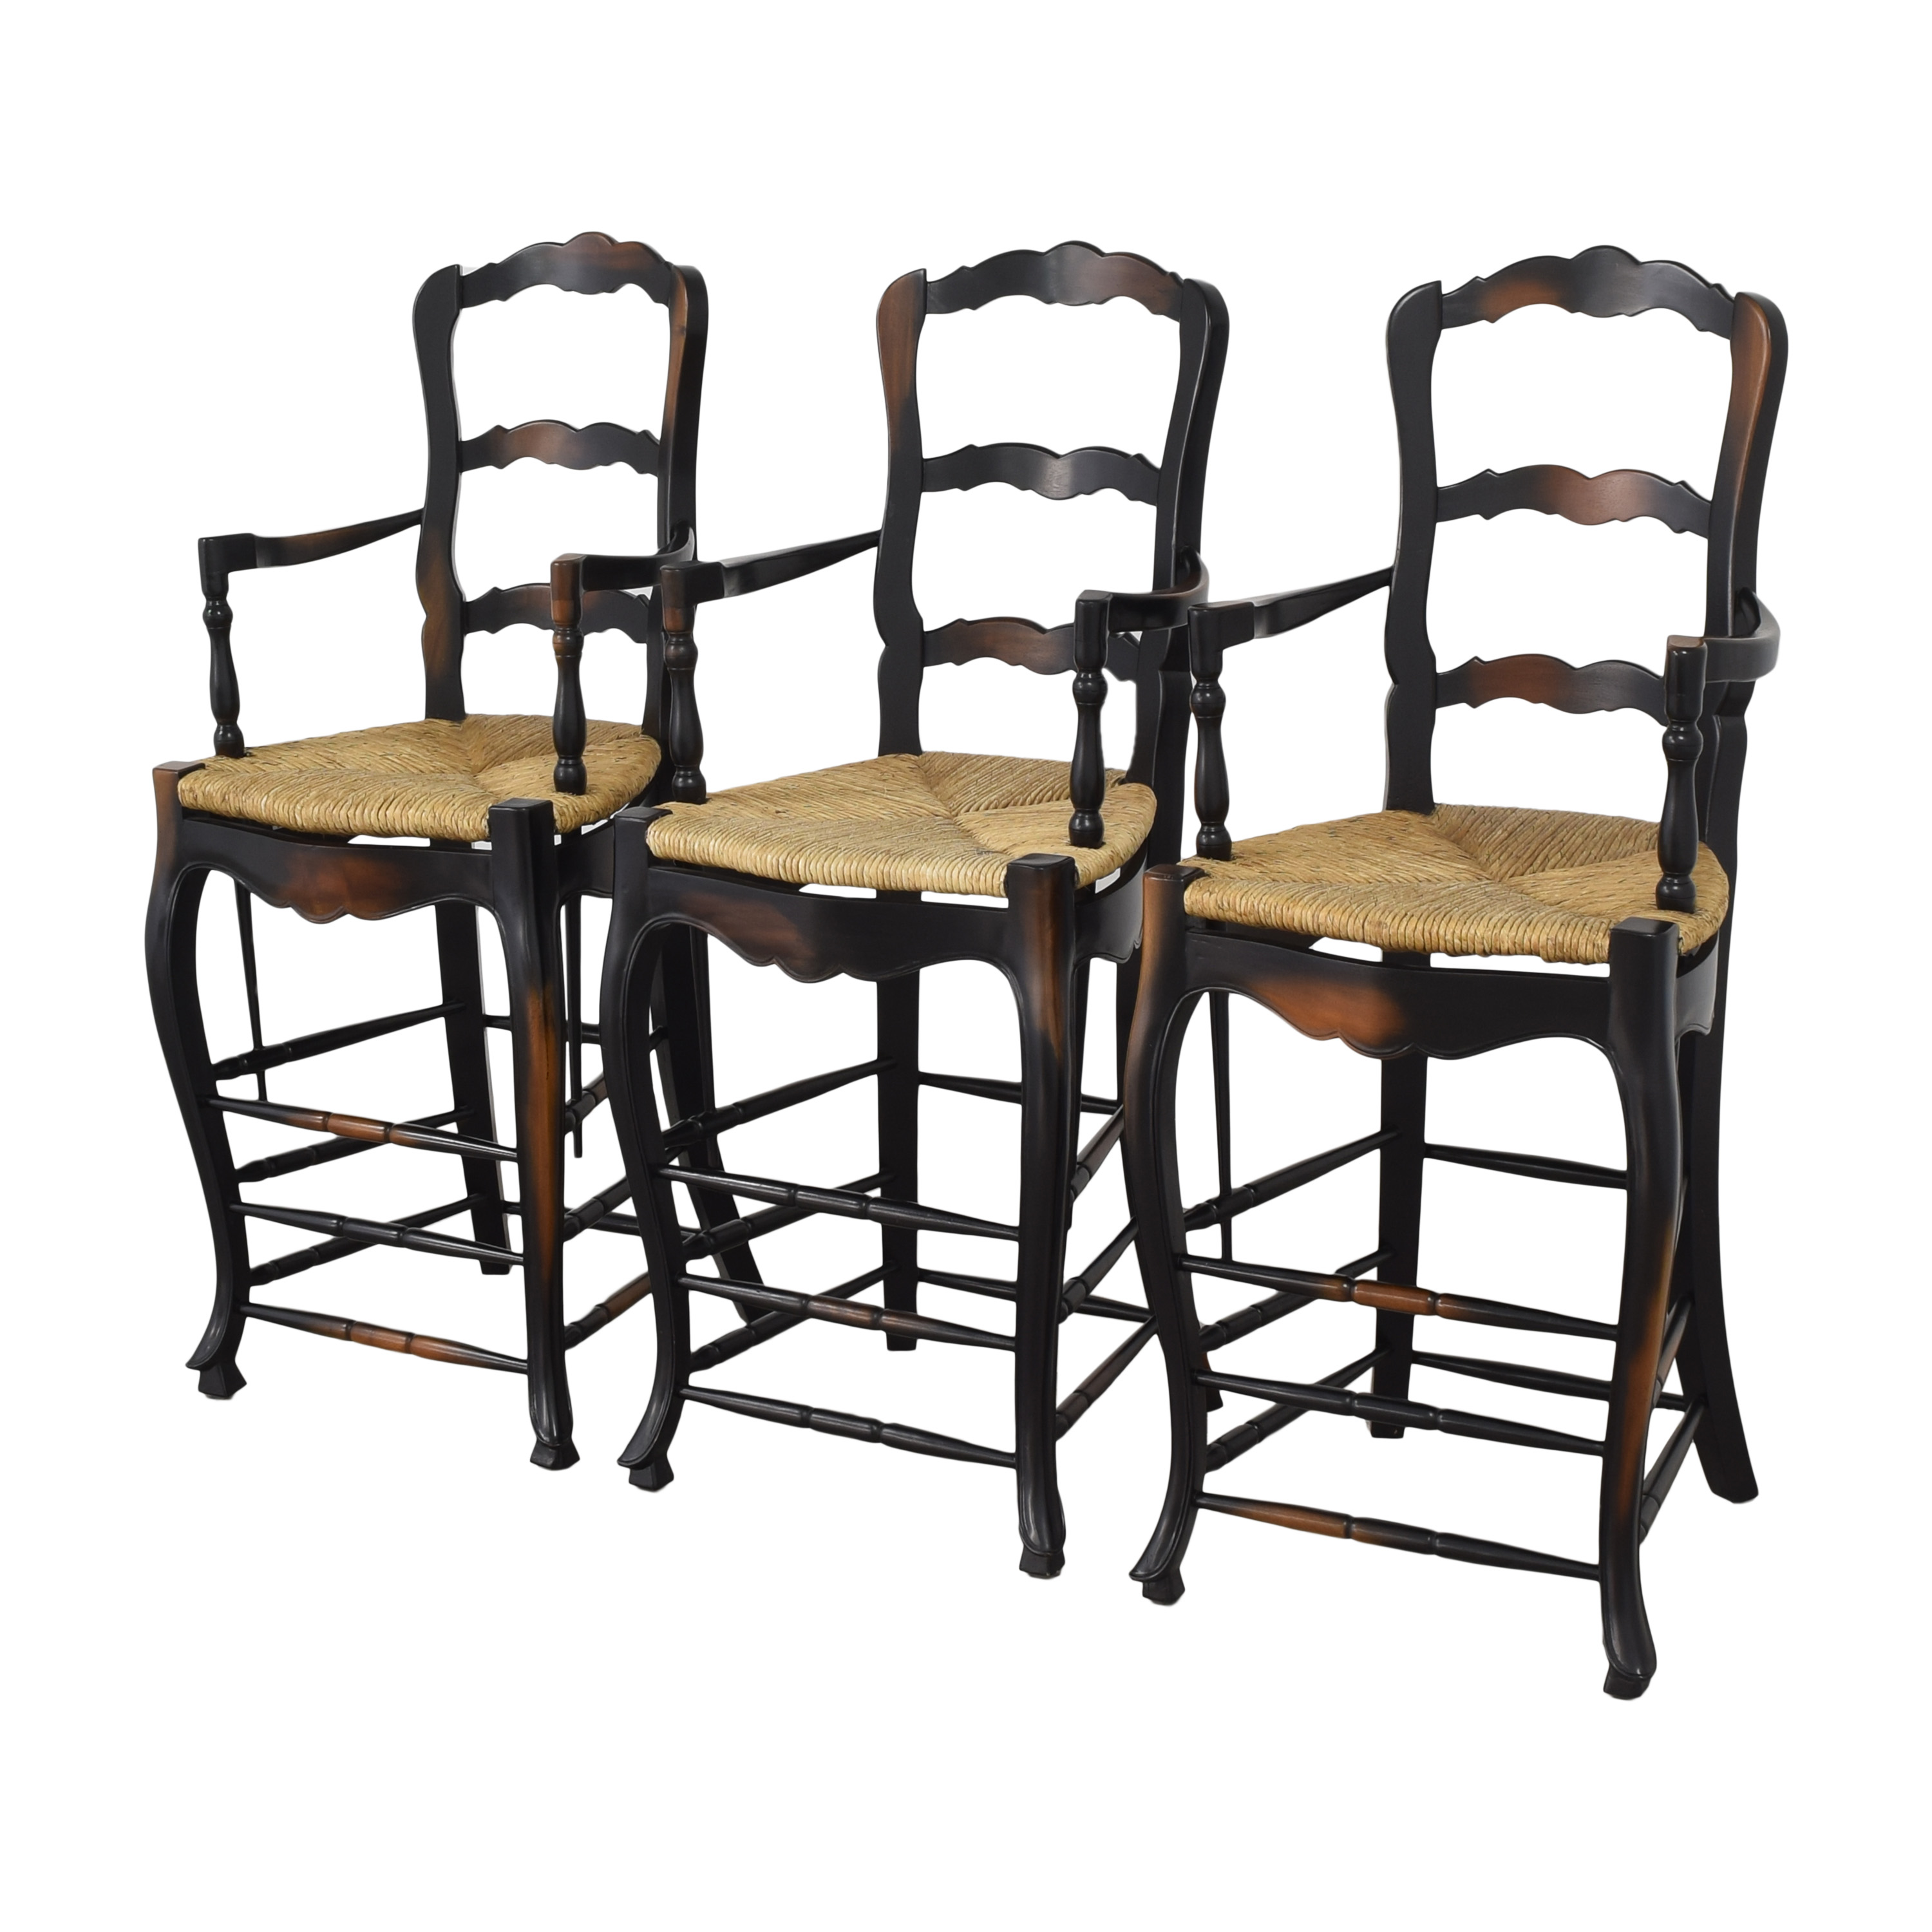 French Country Ladderback Stools